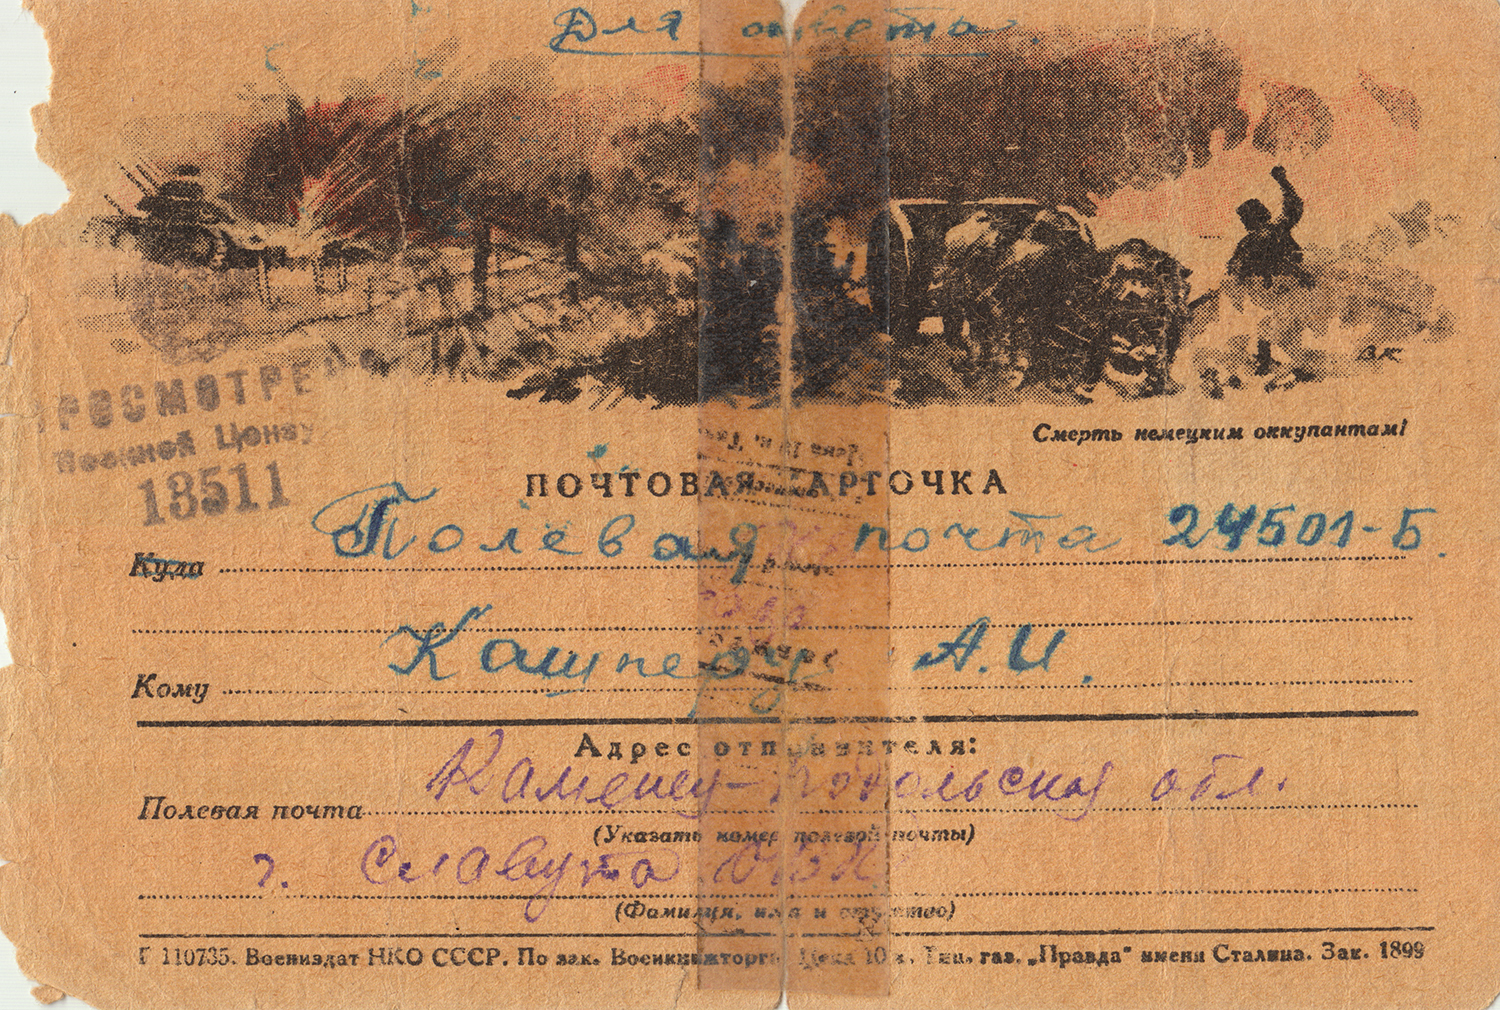 """Postcard Abram Kashper received on the front lines, in 1944, informing him that his father was murdered by the Nazis.  """"25 February 1944. Comrade Kashper! In reply to your query, I inform you that . . . your father was shot by the German scoundrels only because of his Jewish nationality. Dear Comrade Kashper! Avenge the suffering and death of your loved ones. I wish you success in battle. With friendly regards, Major of Guards Unit."""""""